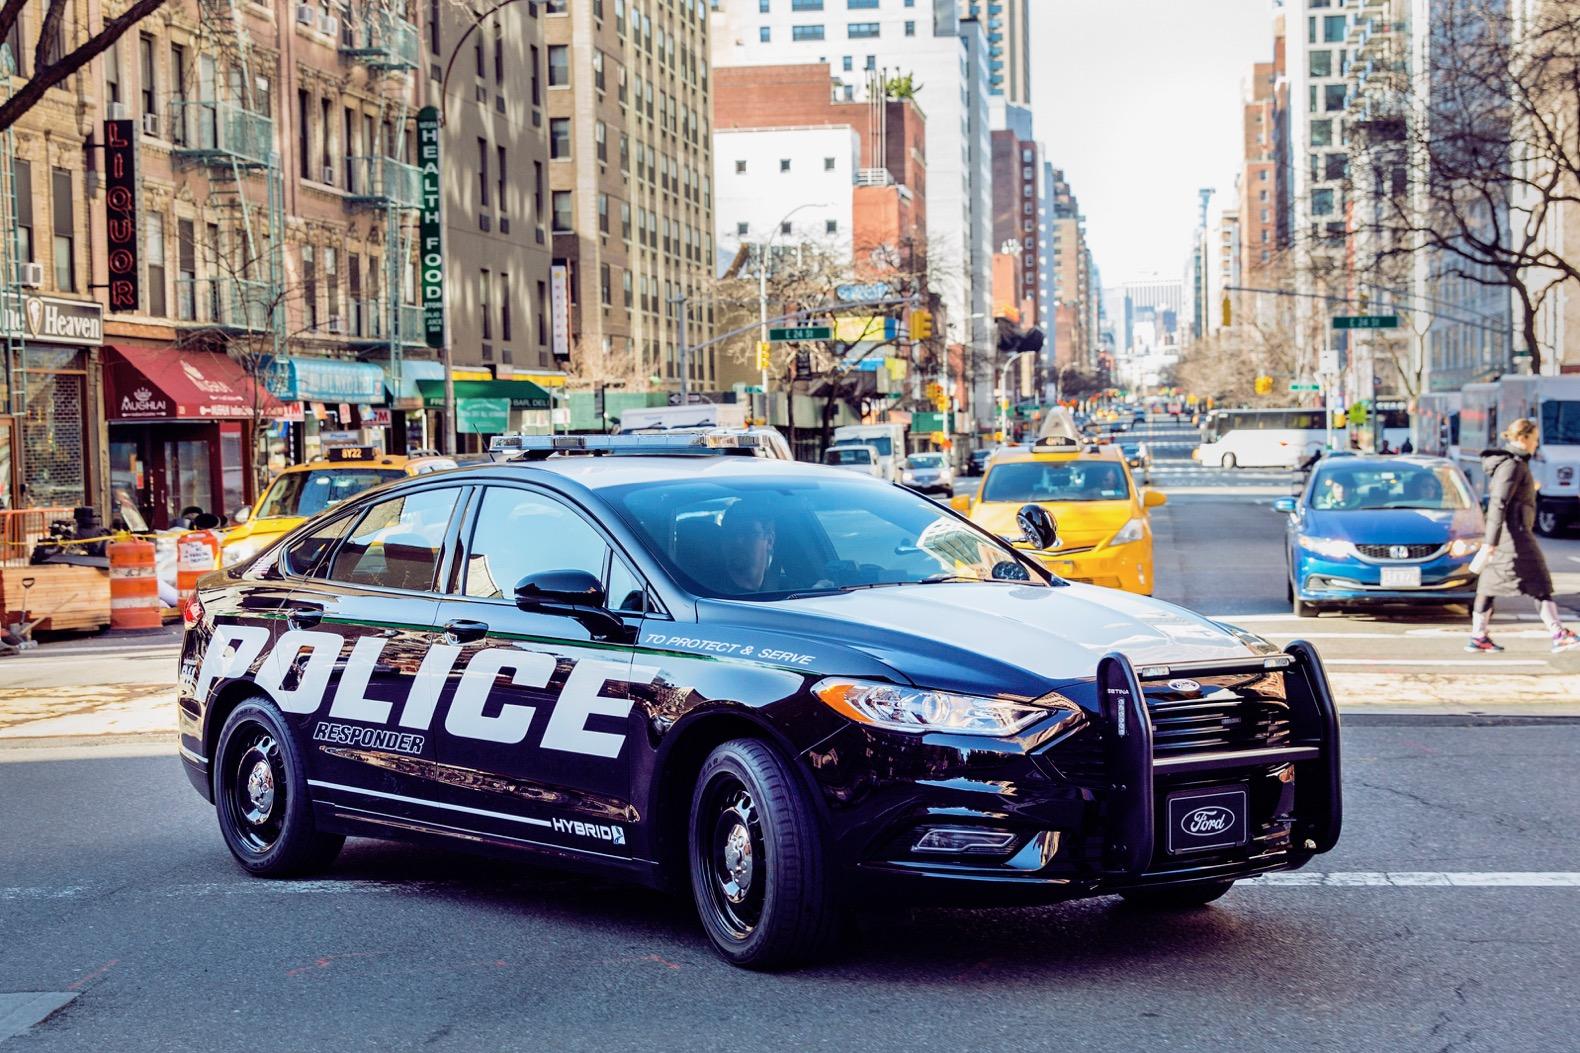 Ford introduces the first-ever hybrid police car & Ford | Inhabitat - Green Design Innovation Architecture Green ... markmcfarlin.com